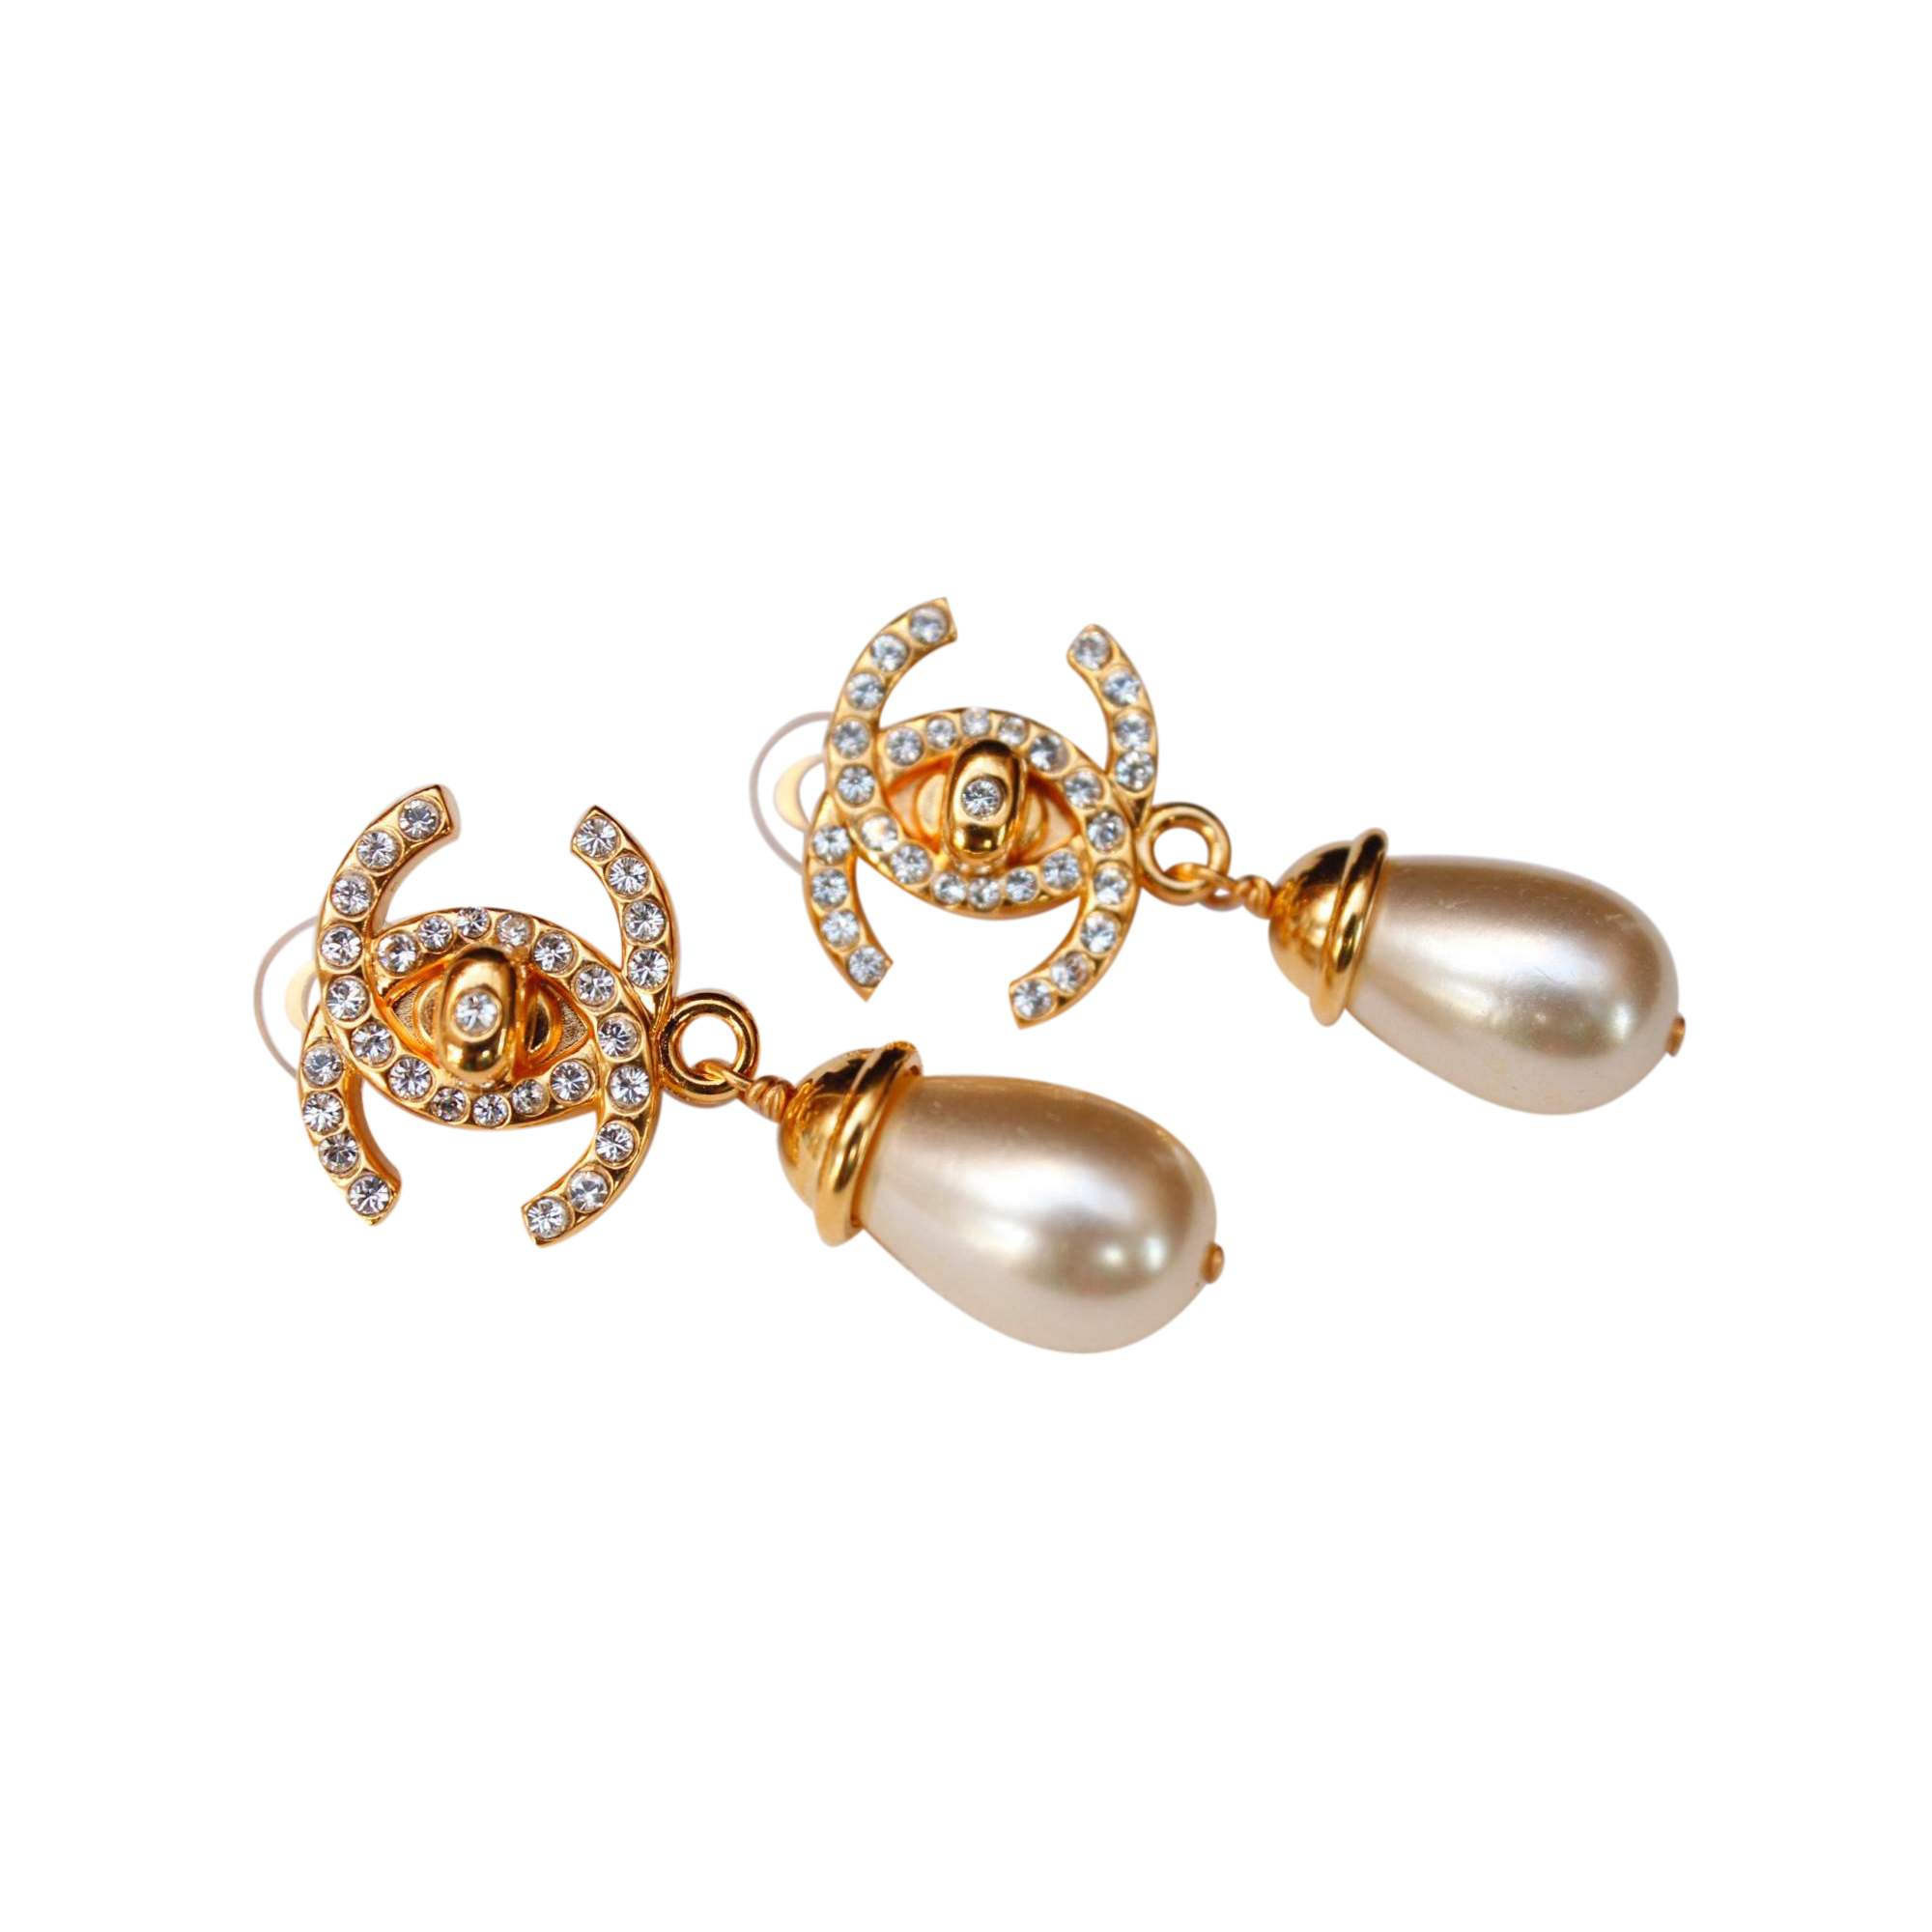 Saint Laurent Gilded Gold And Pearl Clip-on Earrings 4Ir8MGeM